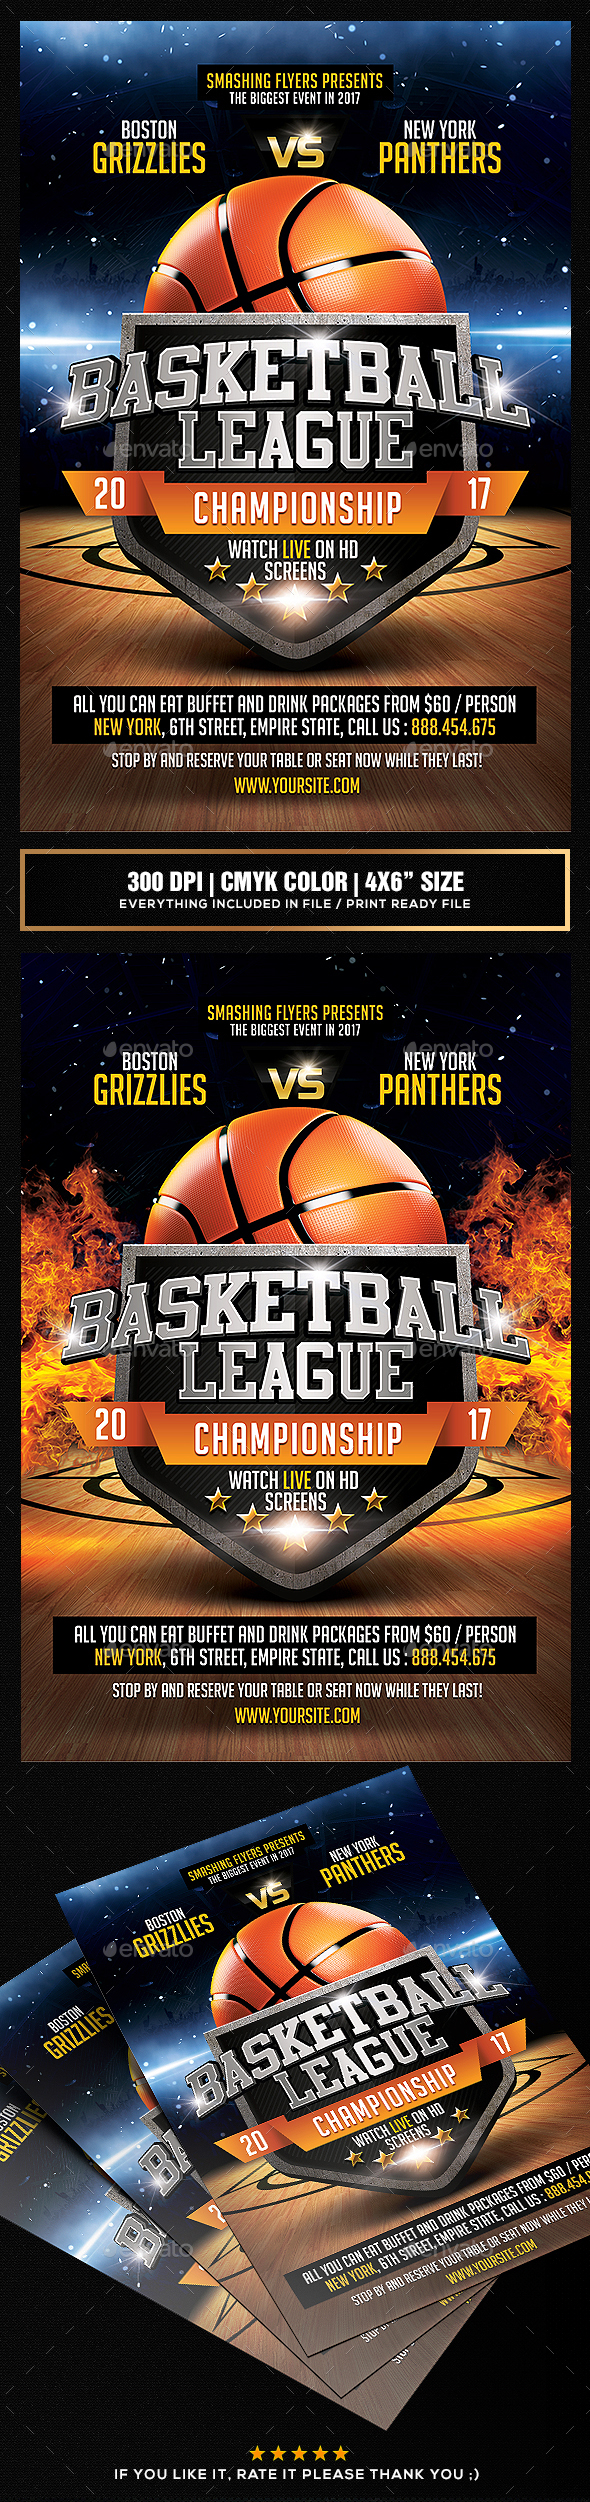 Basketball League Flyer Template - Sports Events